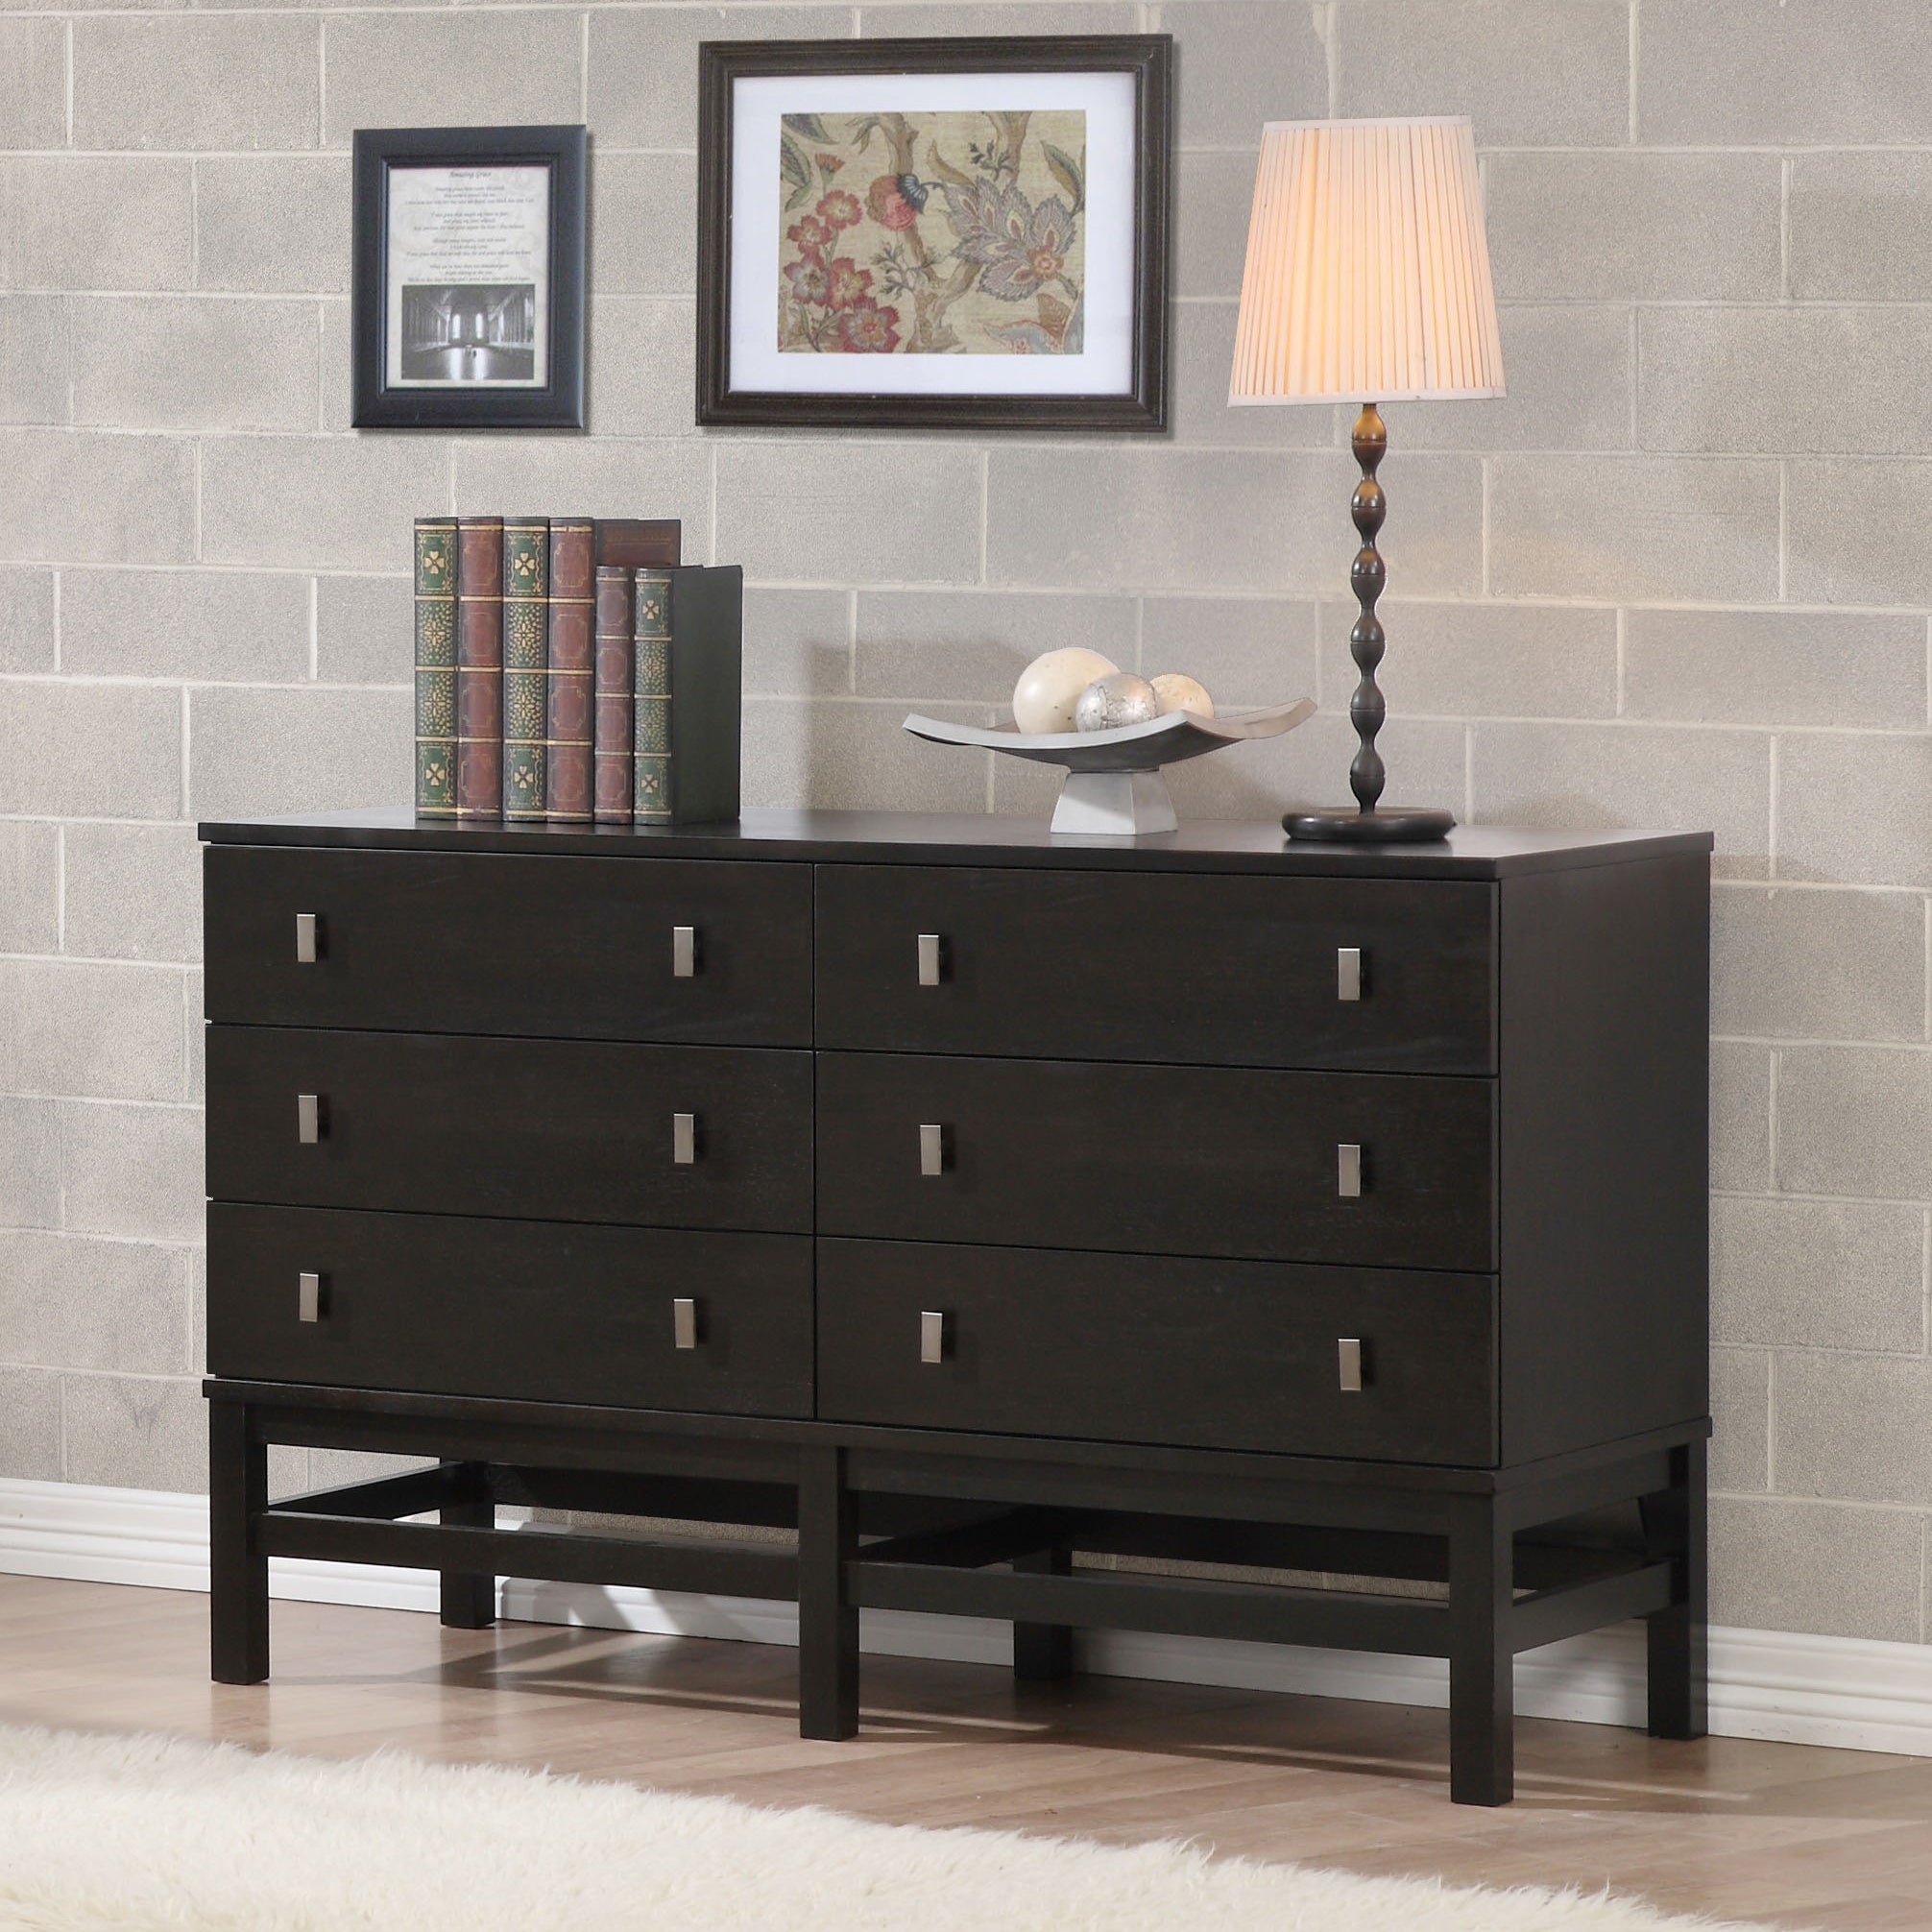 black angeles a steal coaster ca sofa dresser los furniture wood outlet